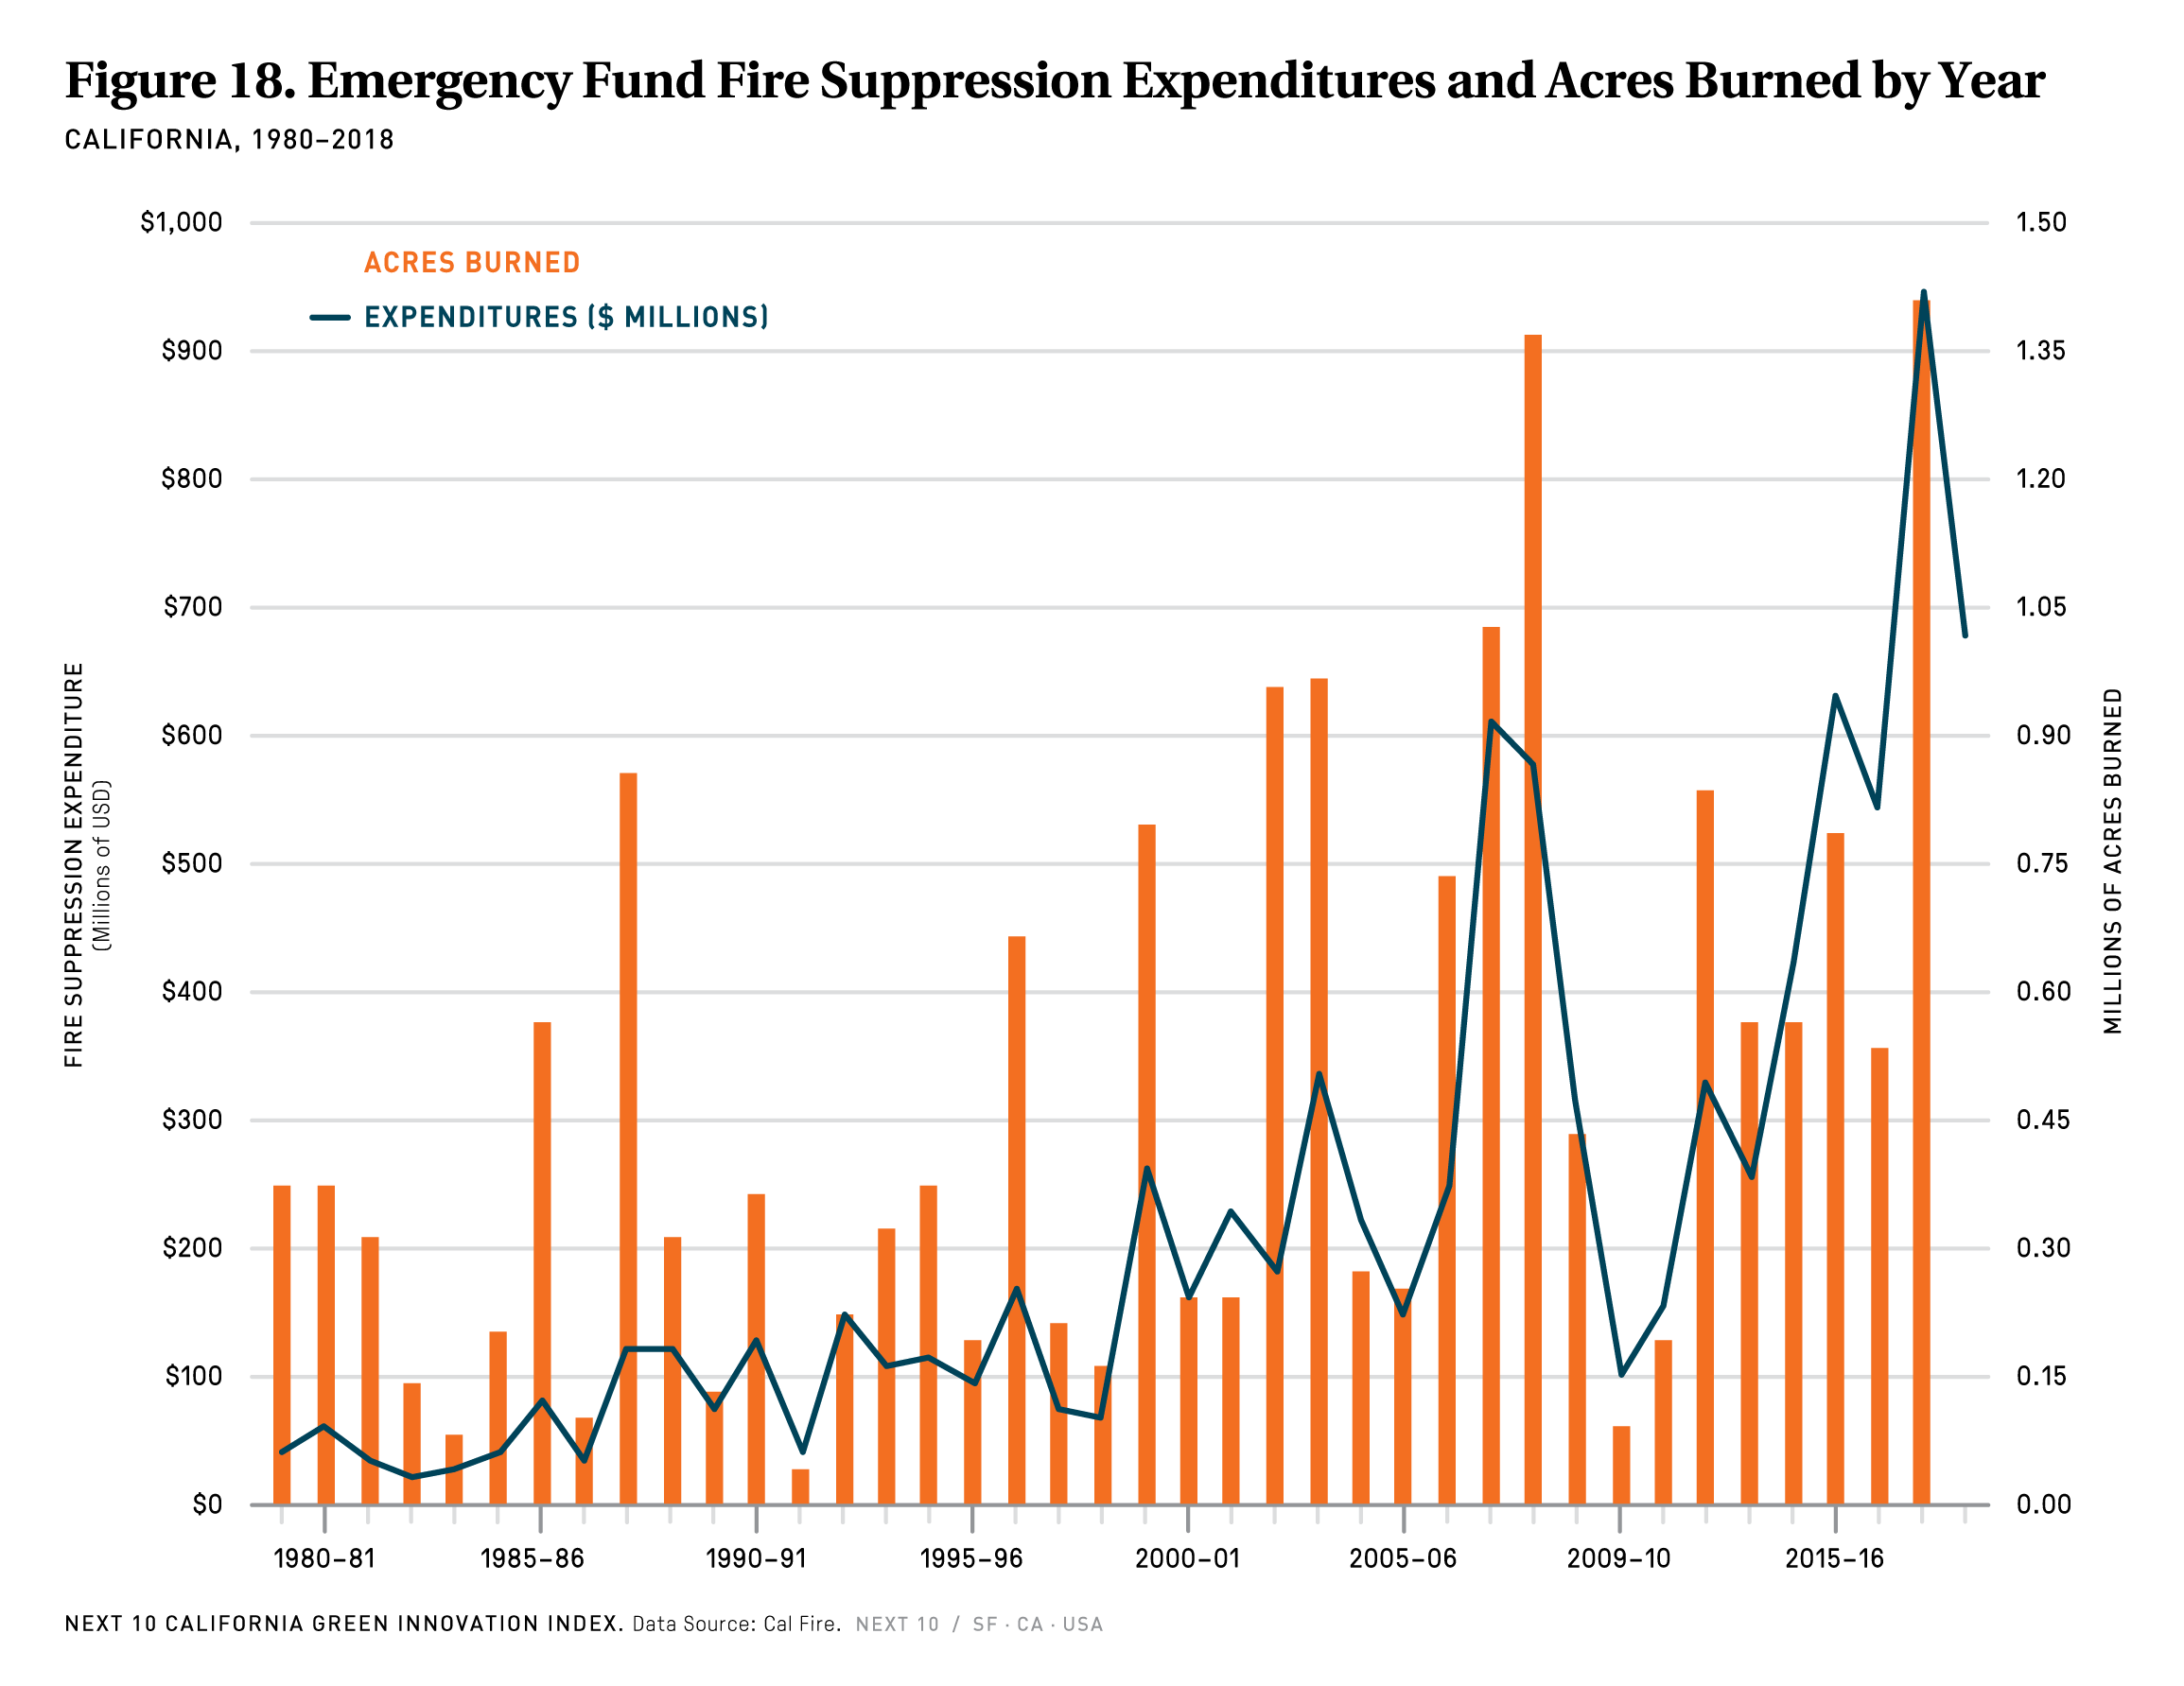 Fire Suppression Expenditures & Acres Burned